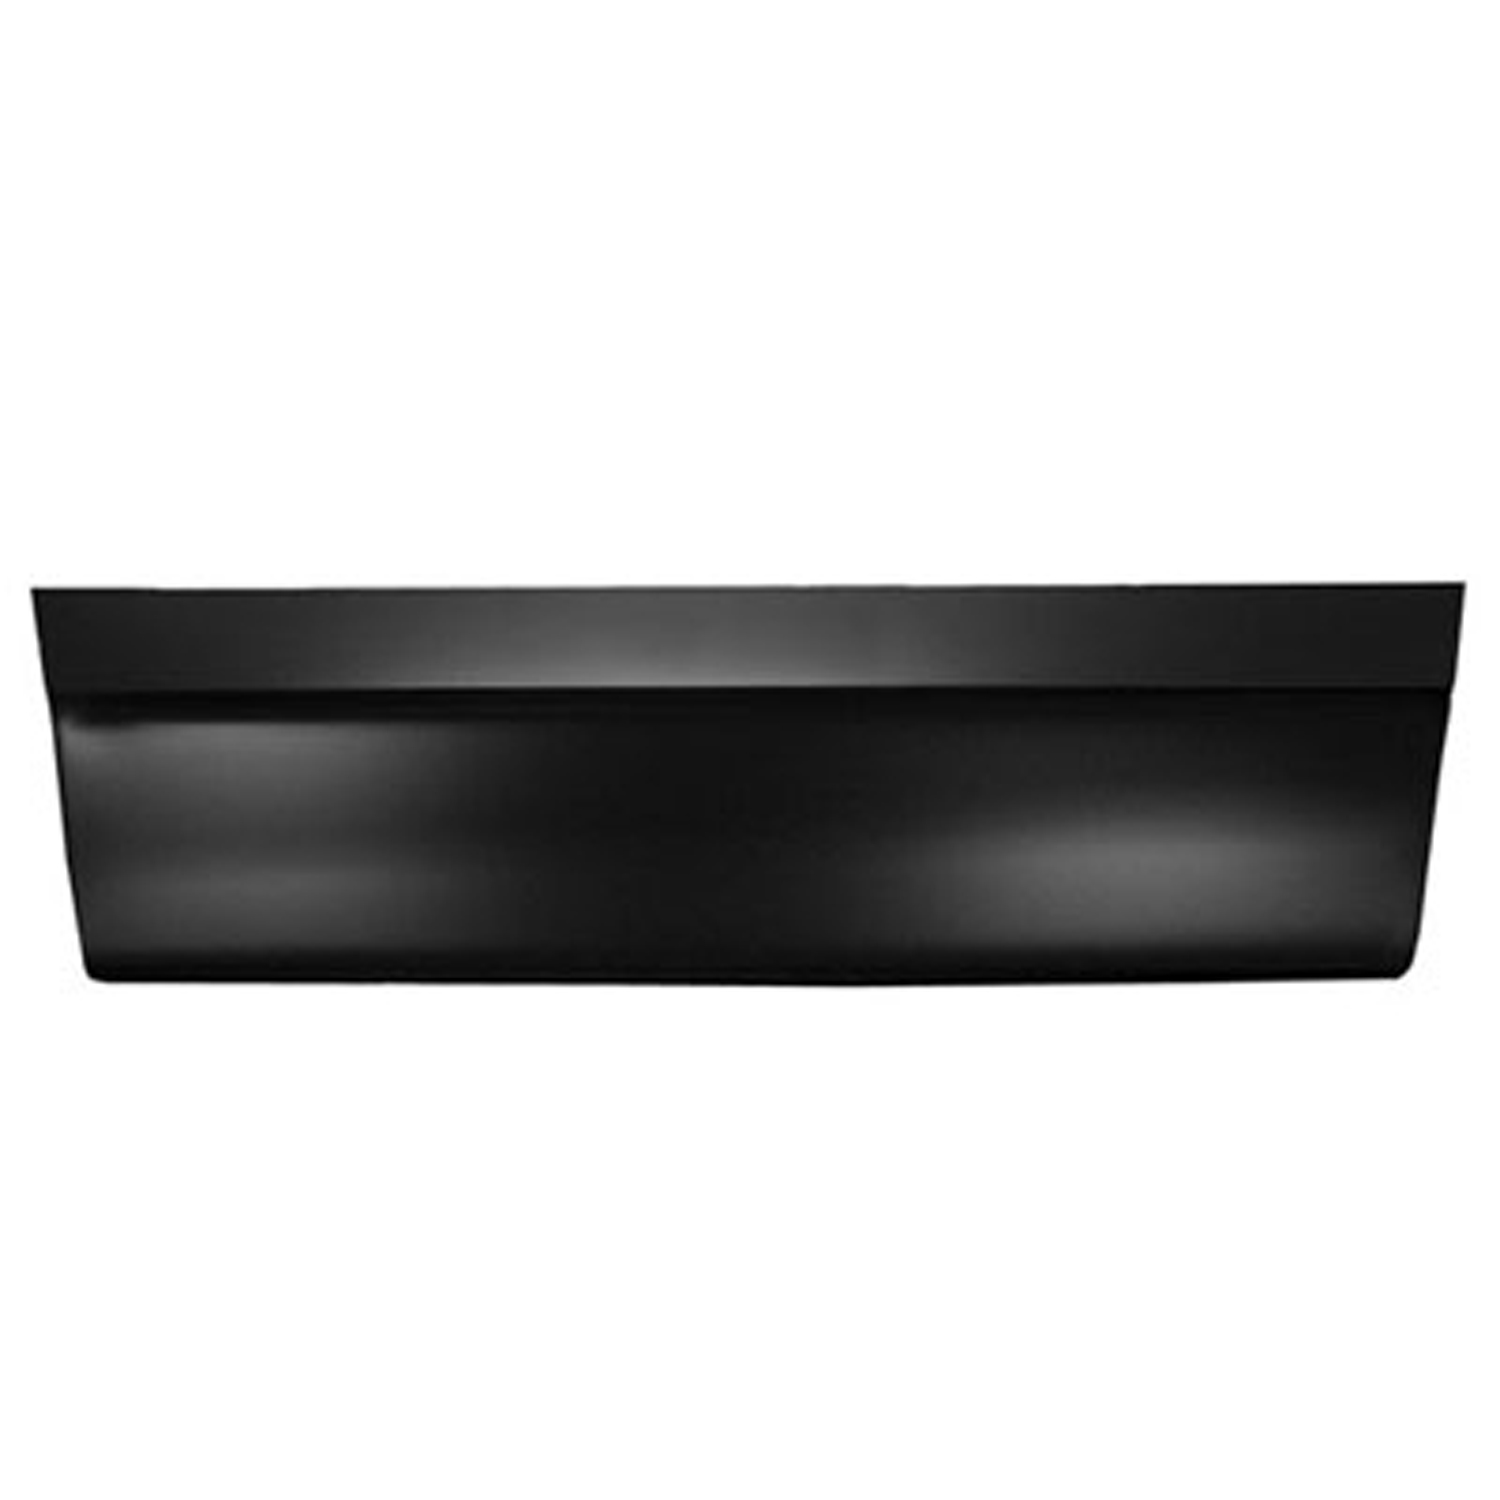 1997-2003 Ford F-150 Lower Door Skin Left Drivers 52 x 15 x 4 Inches